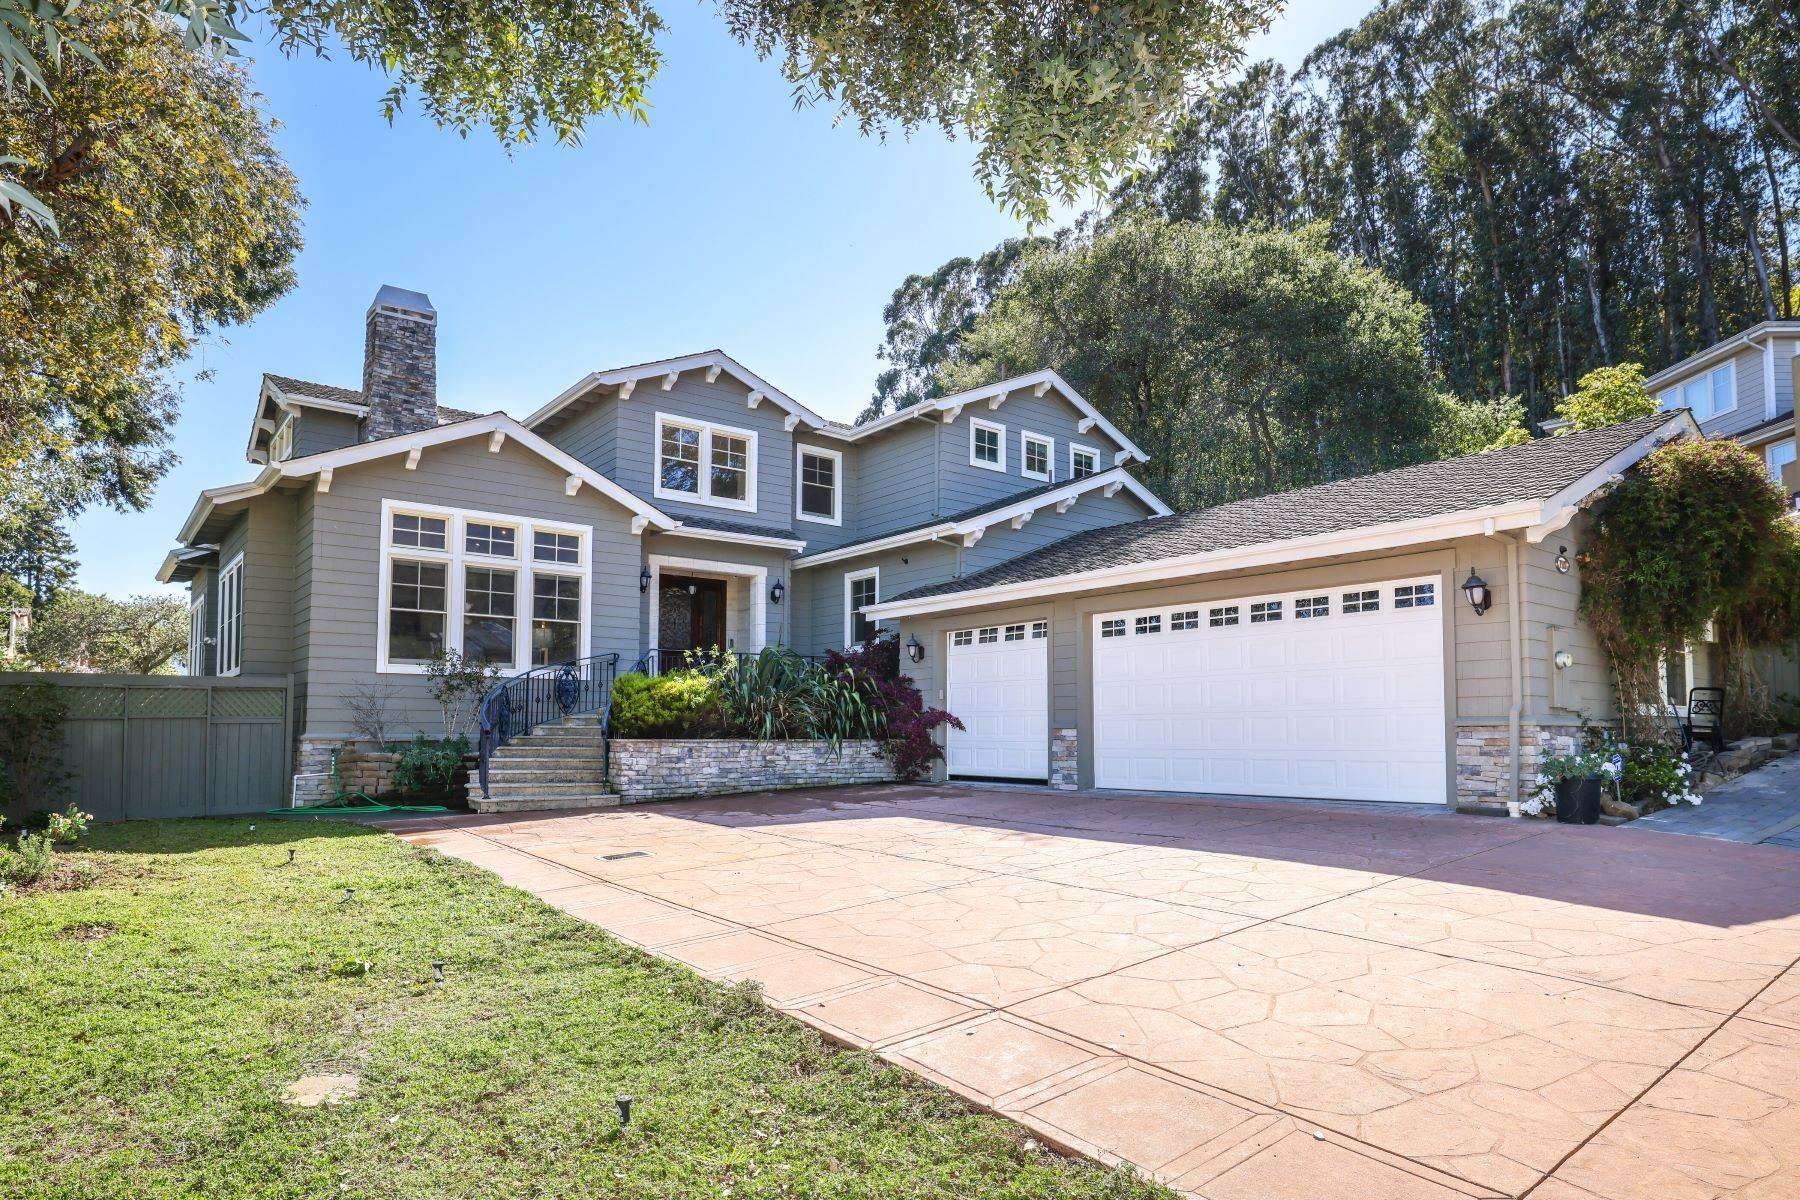 Single Family Homes für Verkauf beim Stunning Custom Built Executive Home 710 Santa Barbara Avenue Millbrae, Kalifornien 94030 Vereinigte Staaten